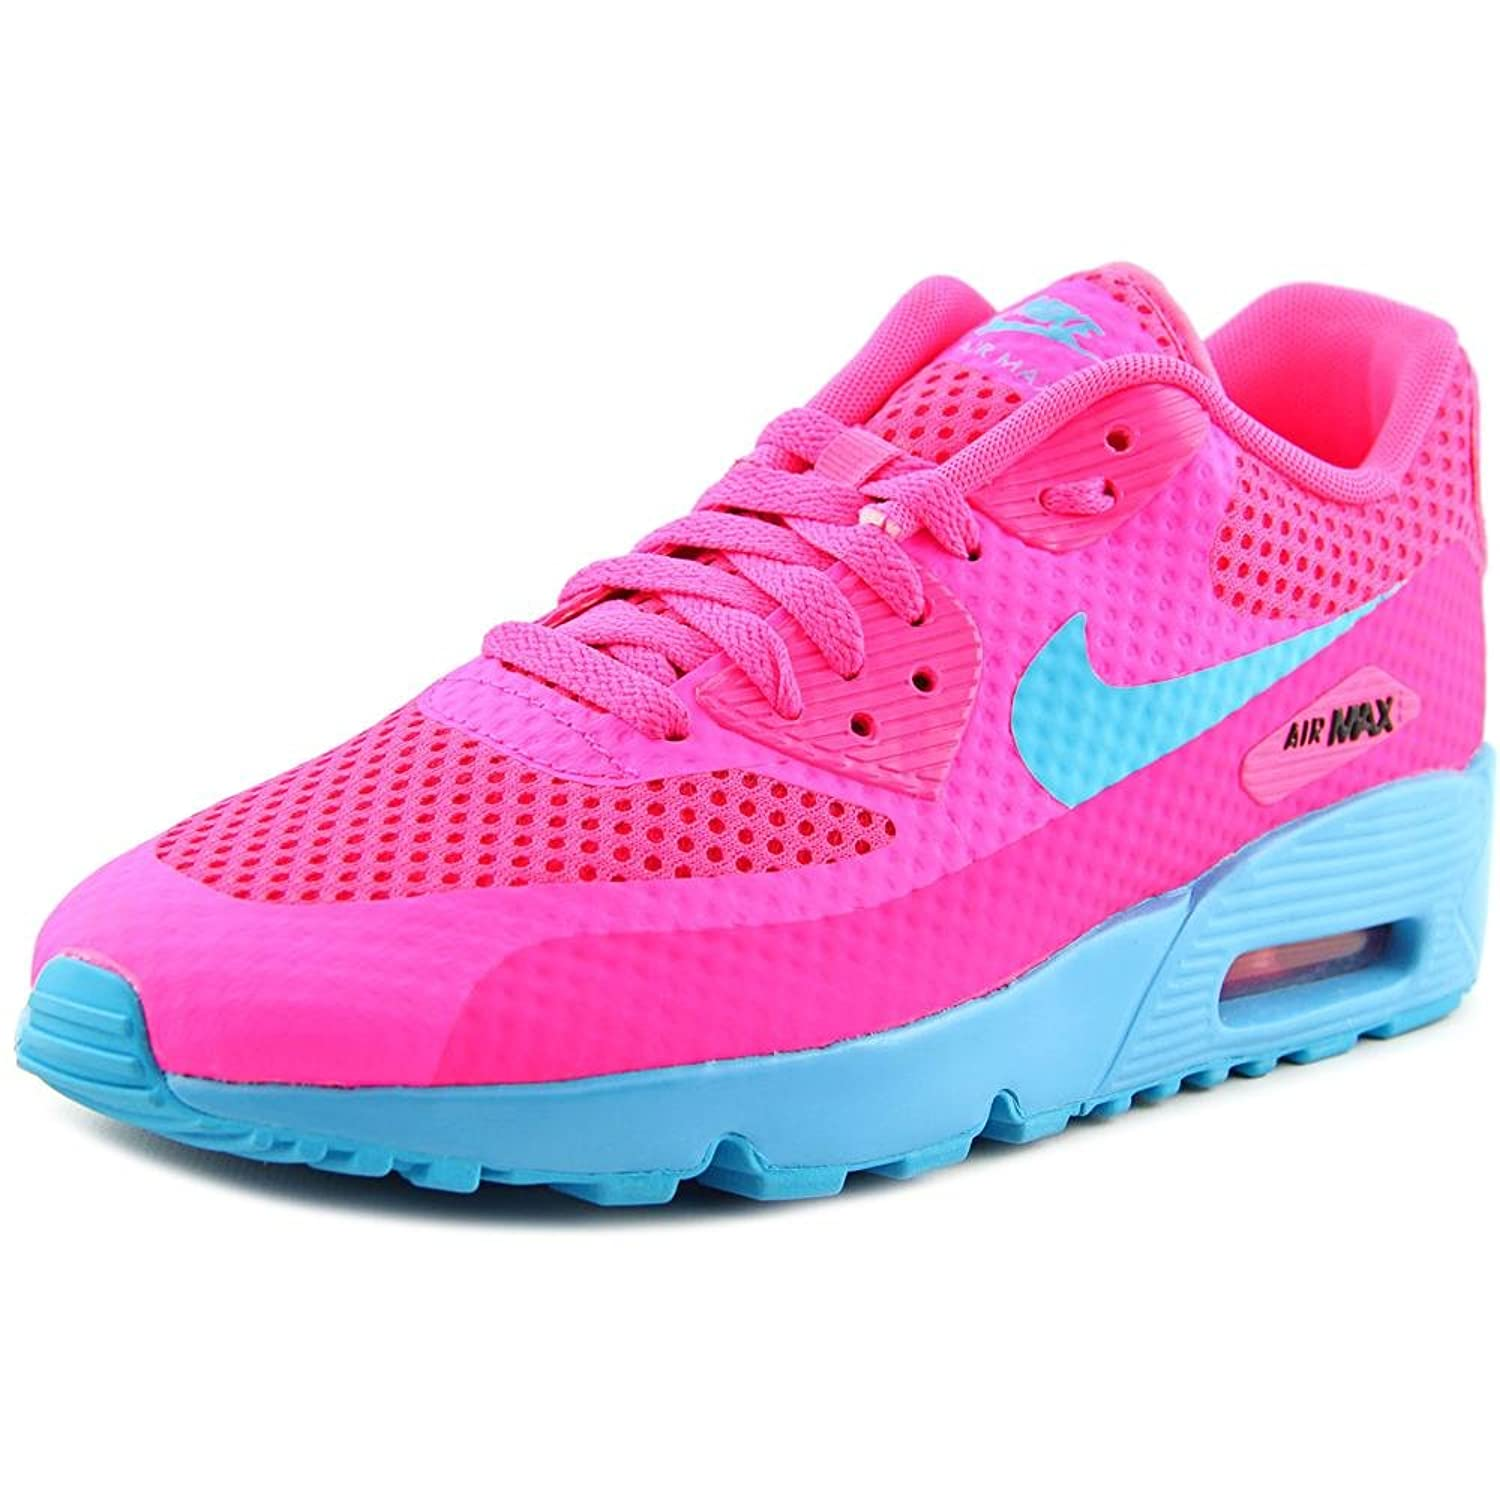 new style b3717 ffa0d NIKE Air Max 90 BR (GS) Youth US 6.5 Pink Walking Shoe ...